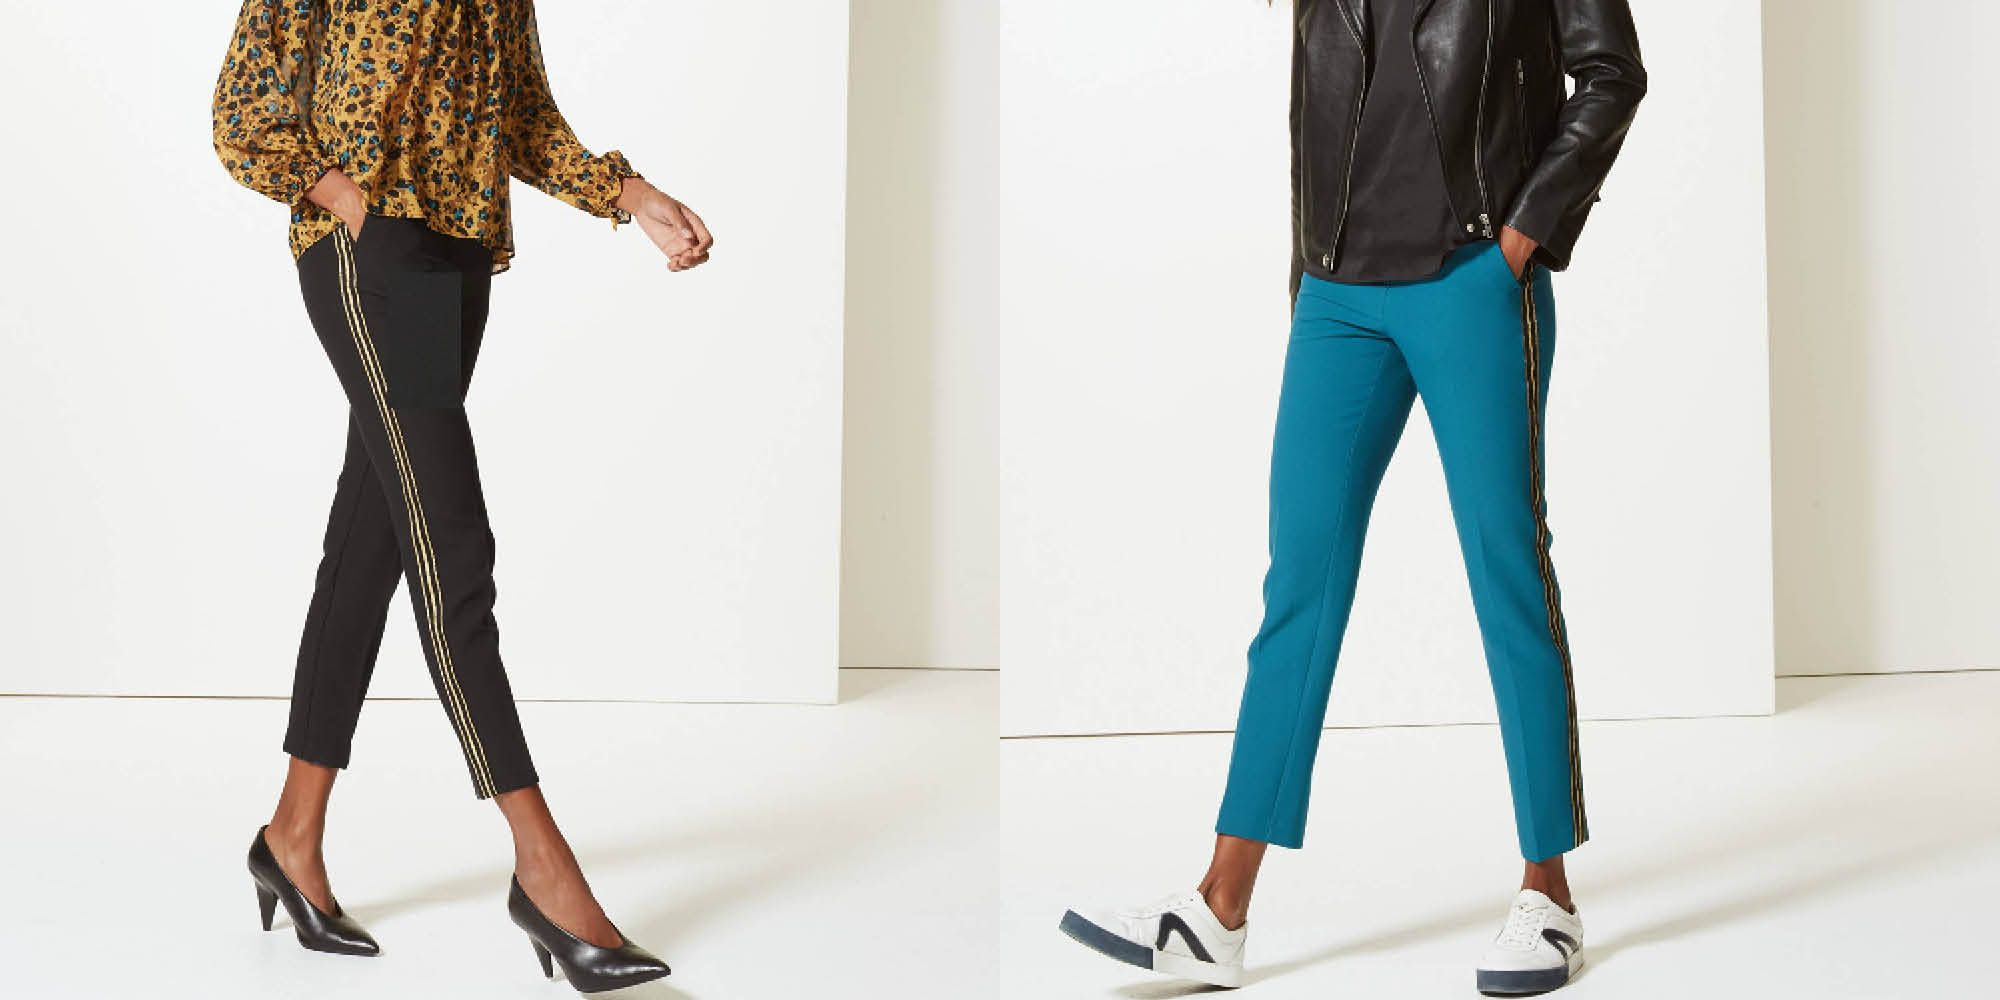 0bdfa516e6 These £35 Marks & Spencer trousers are a must-have for party season